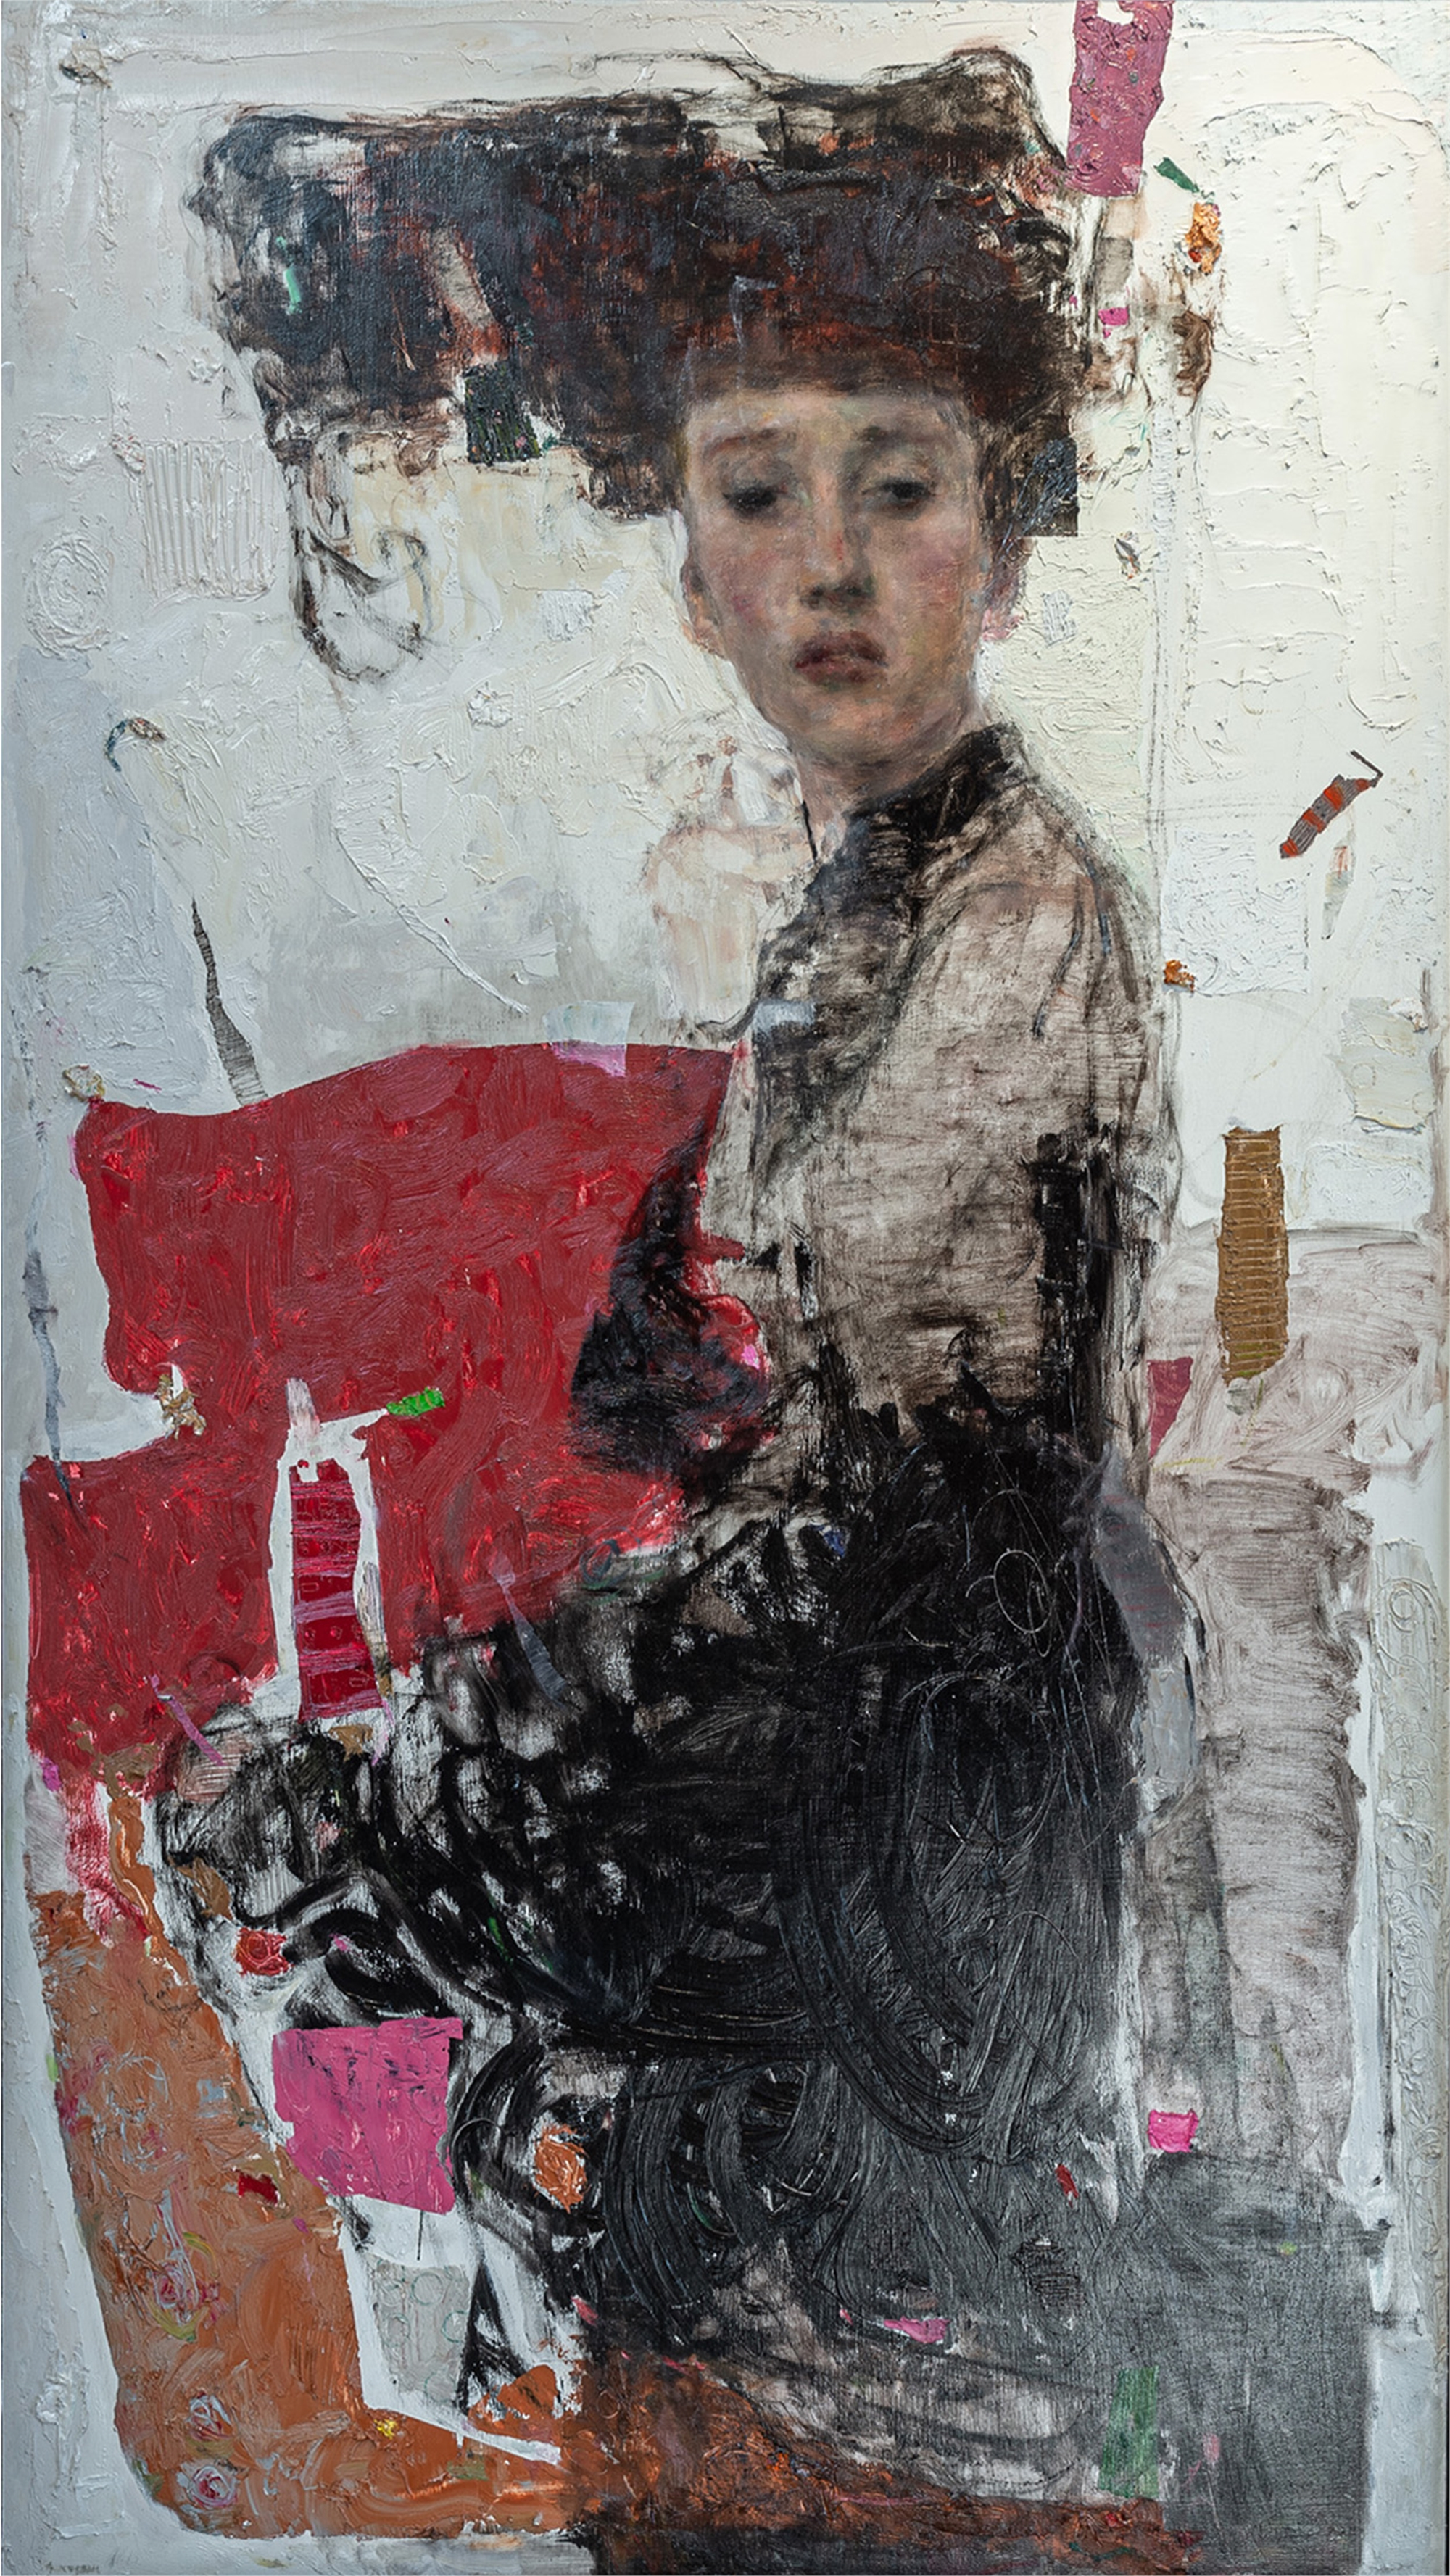 Seed by Ron Hicks